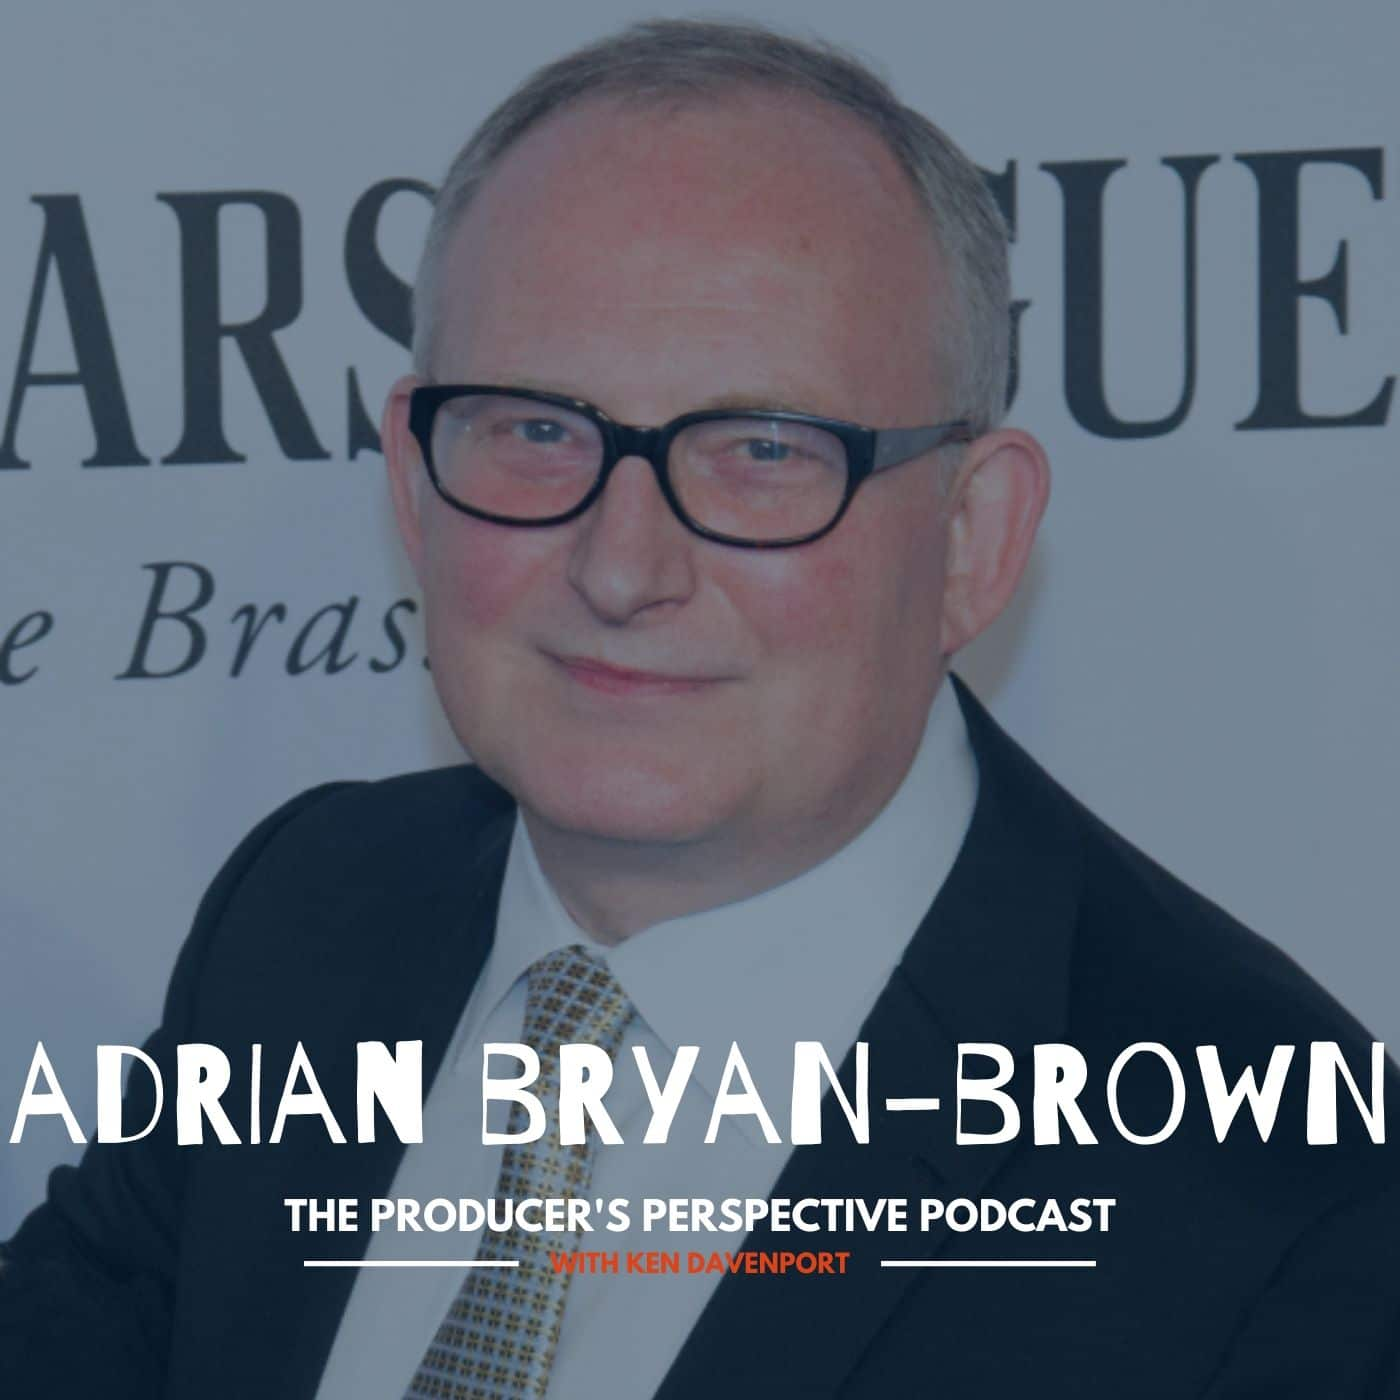 Ken Davenport's The Producer's Perspective Podcast Episode 66 - Adrian Bryan-Brown